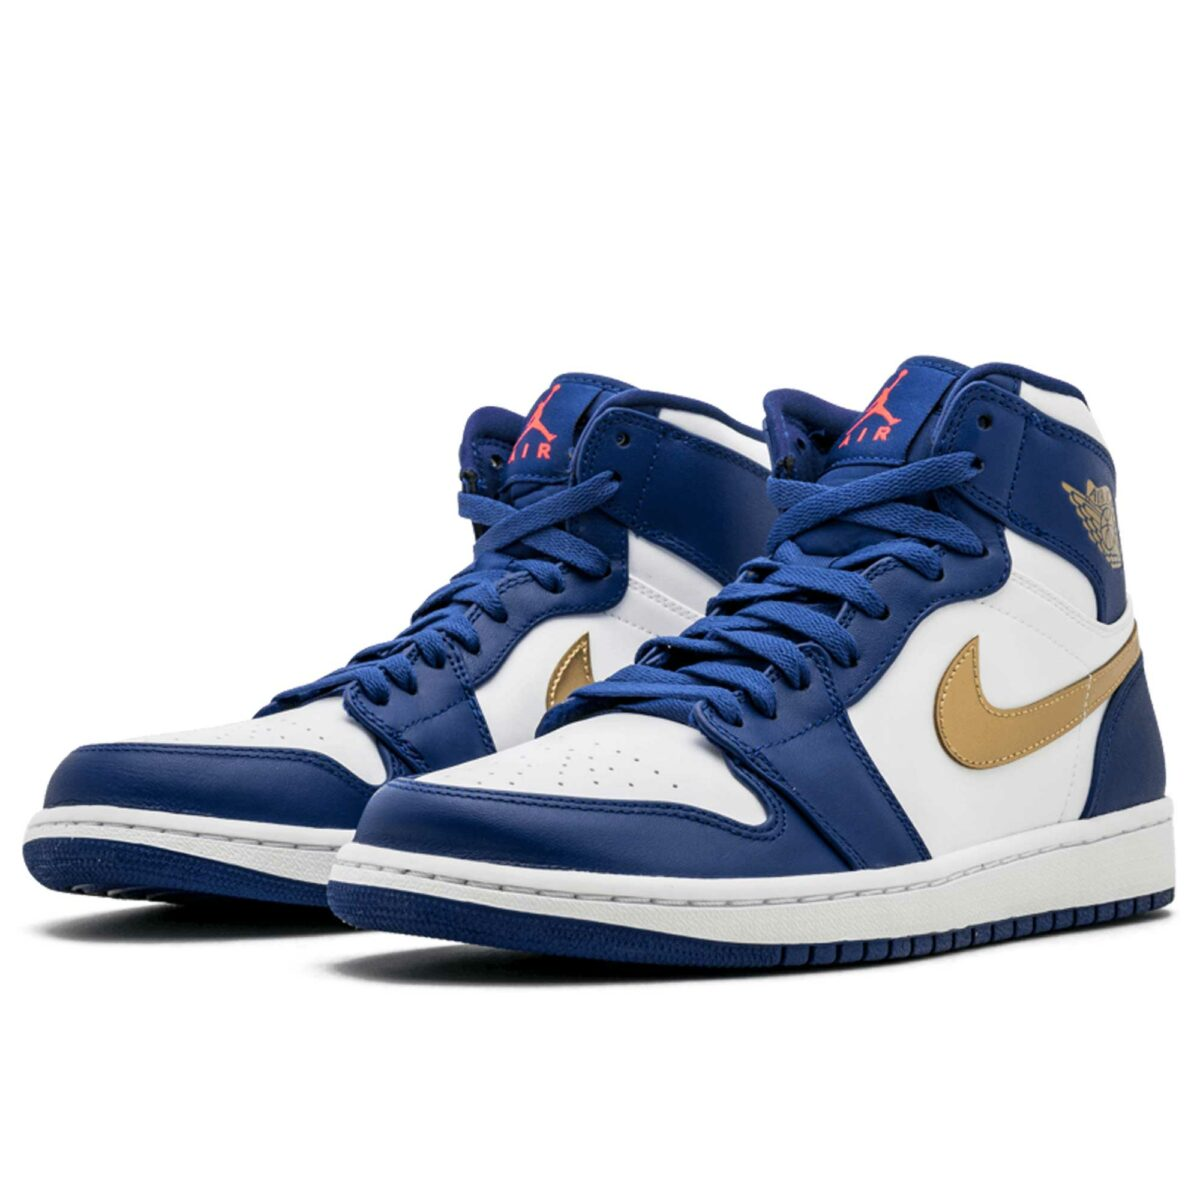 air jordan air jordan 1 retro og blue white 332550_406 купить